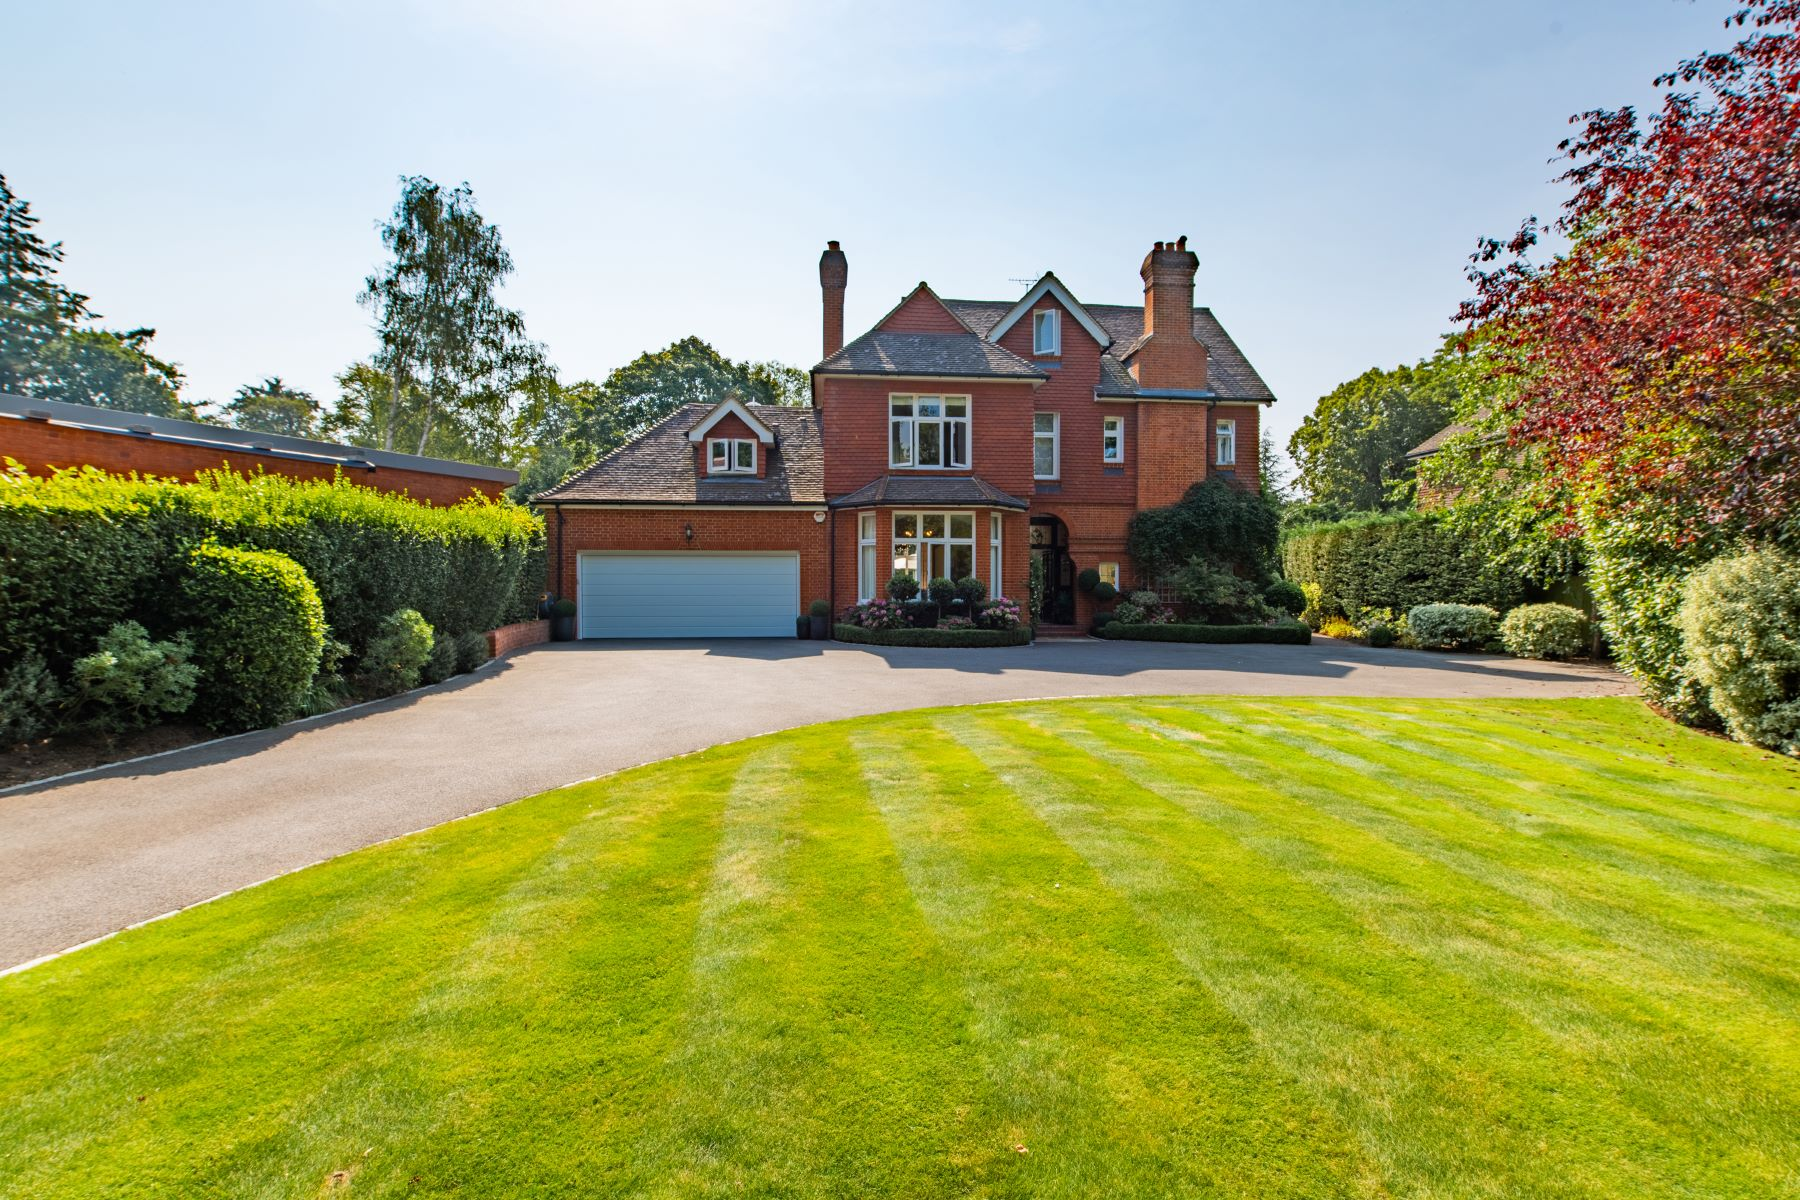 Single Family Homes for Sale at Fairways Miles Lane Cobham, England KT11 2EA United Kingdom